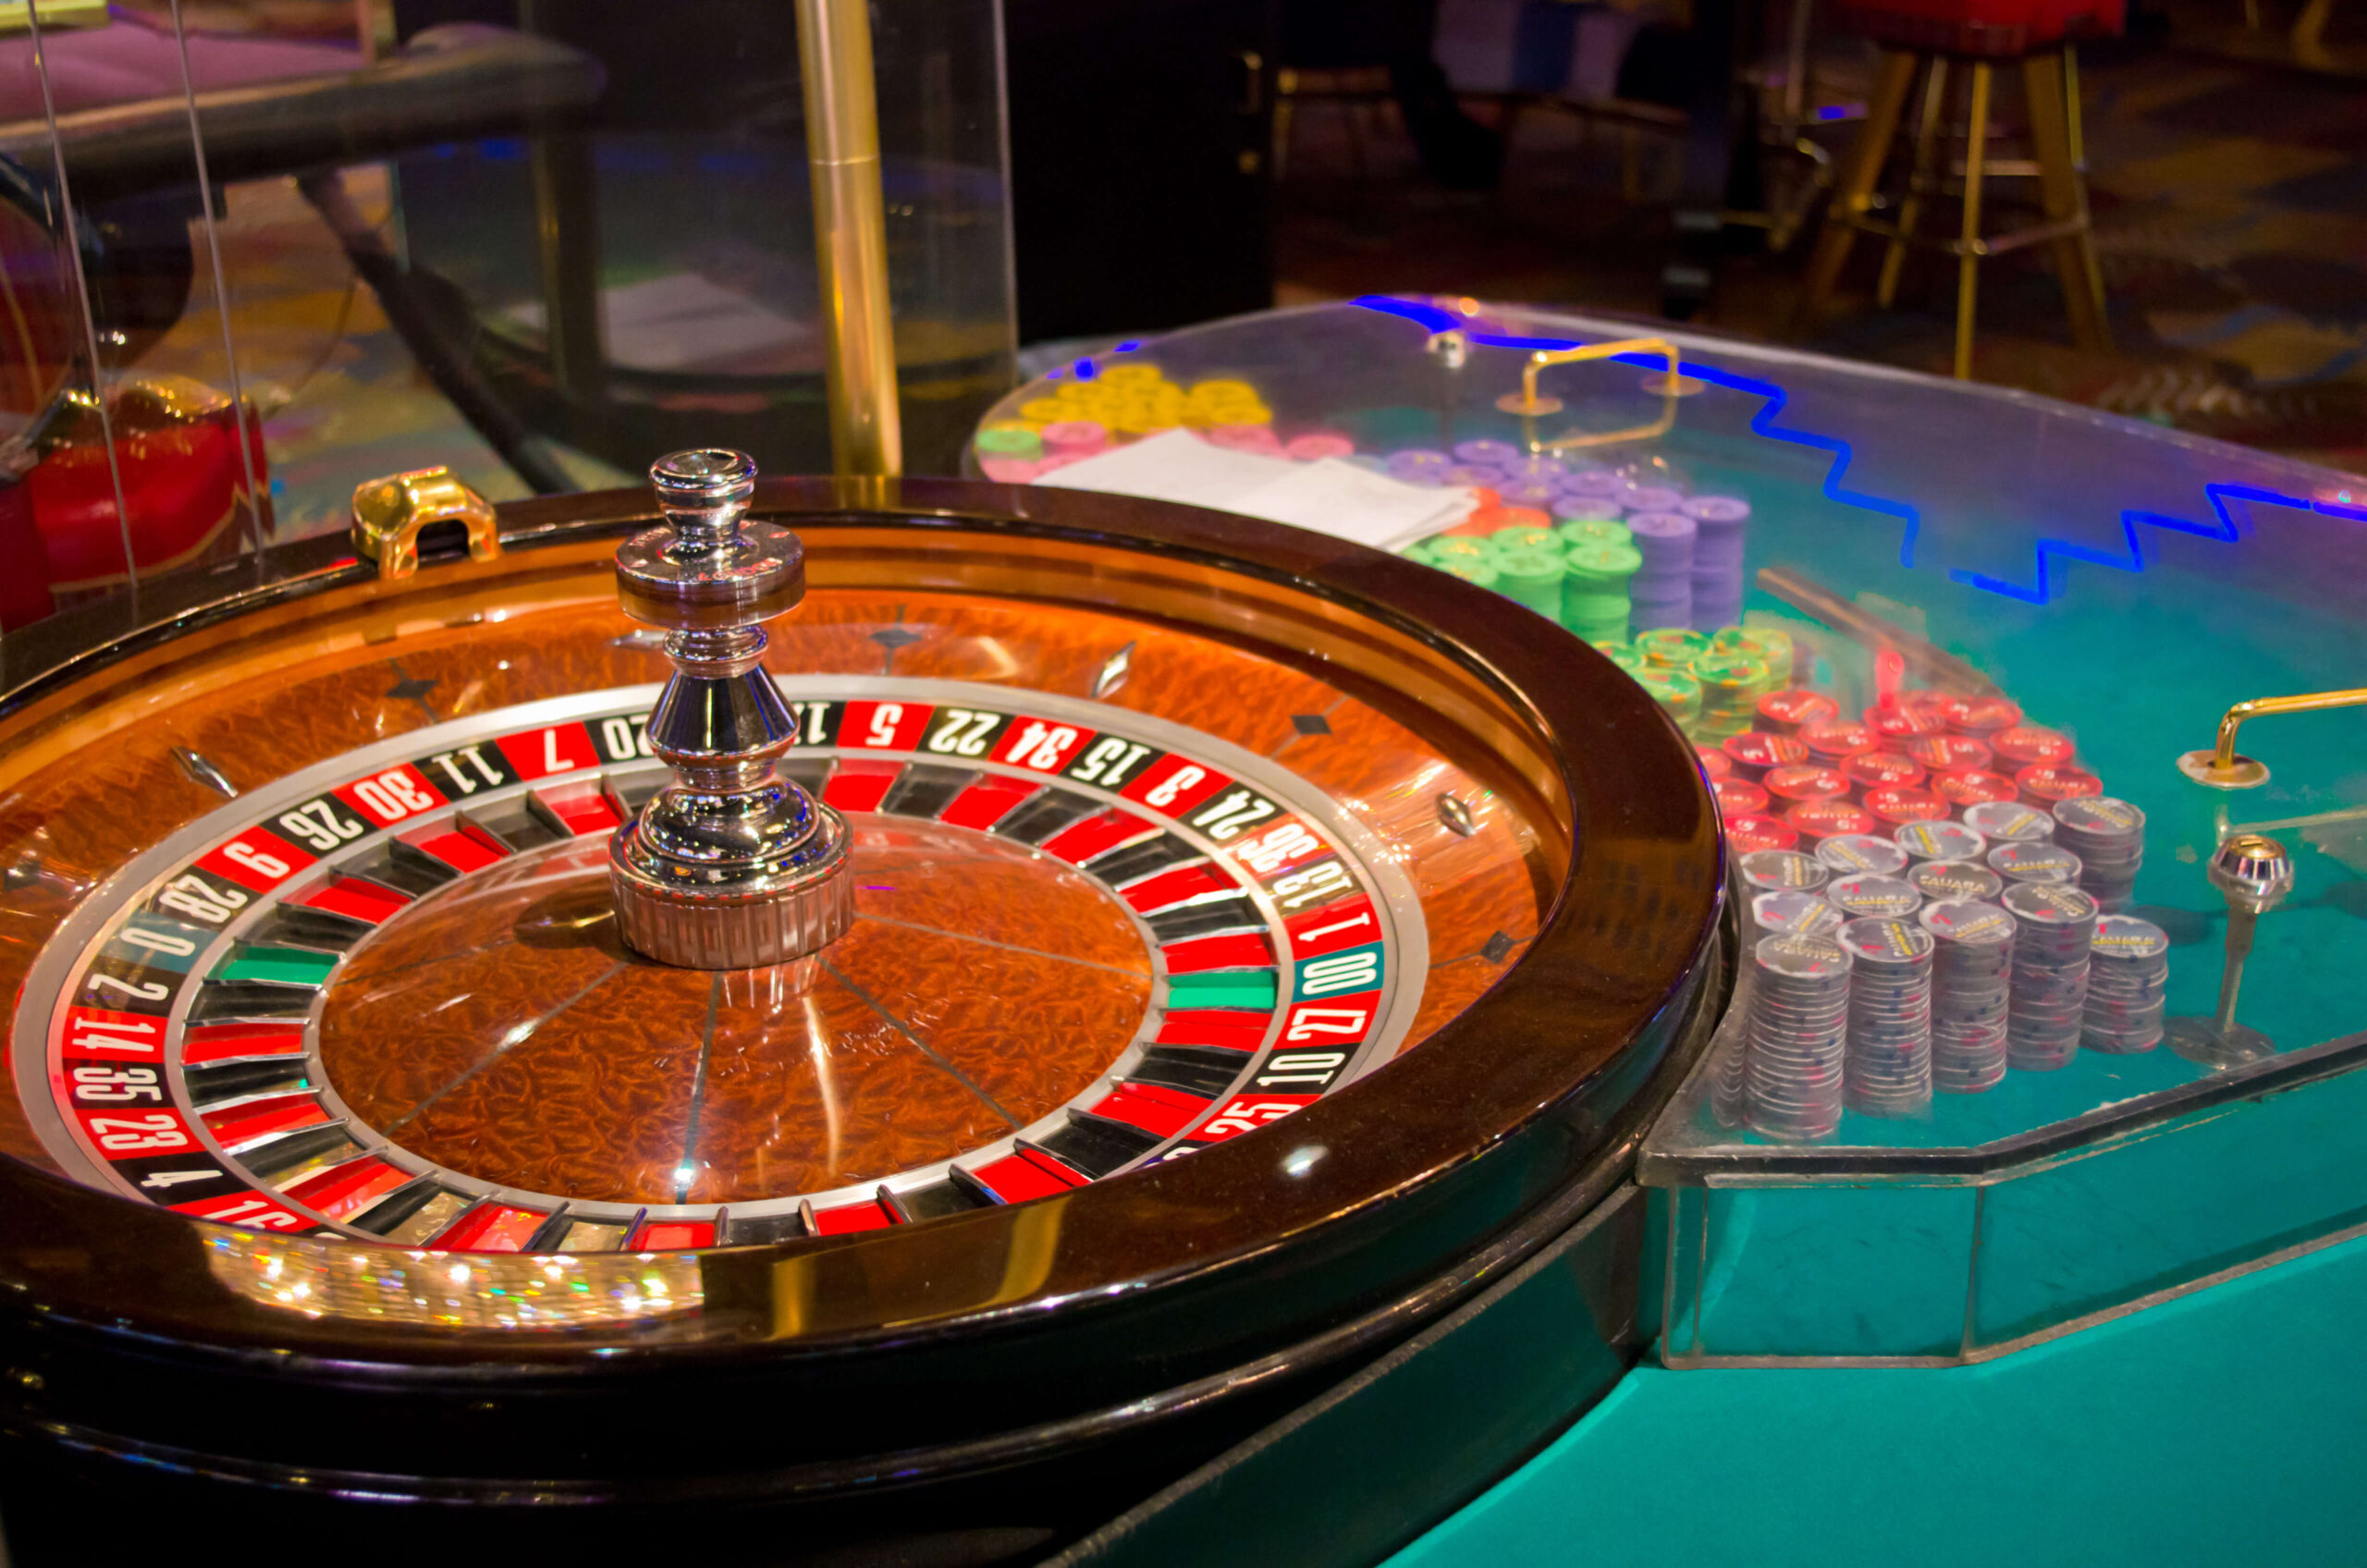 Oldest Casinos in the world